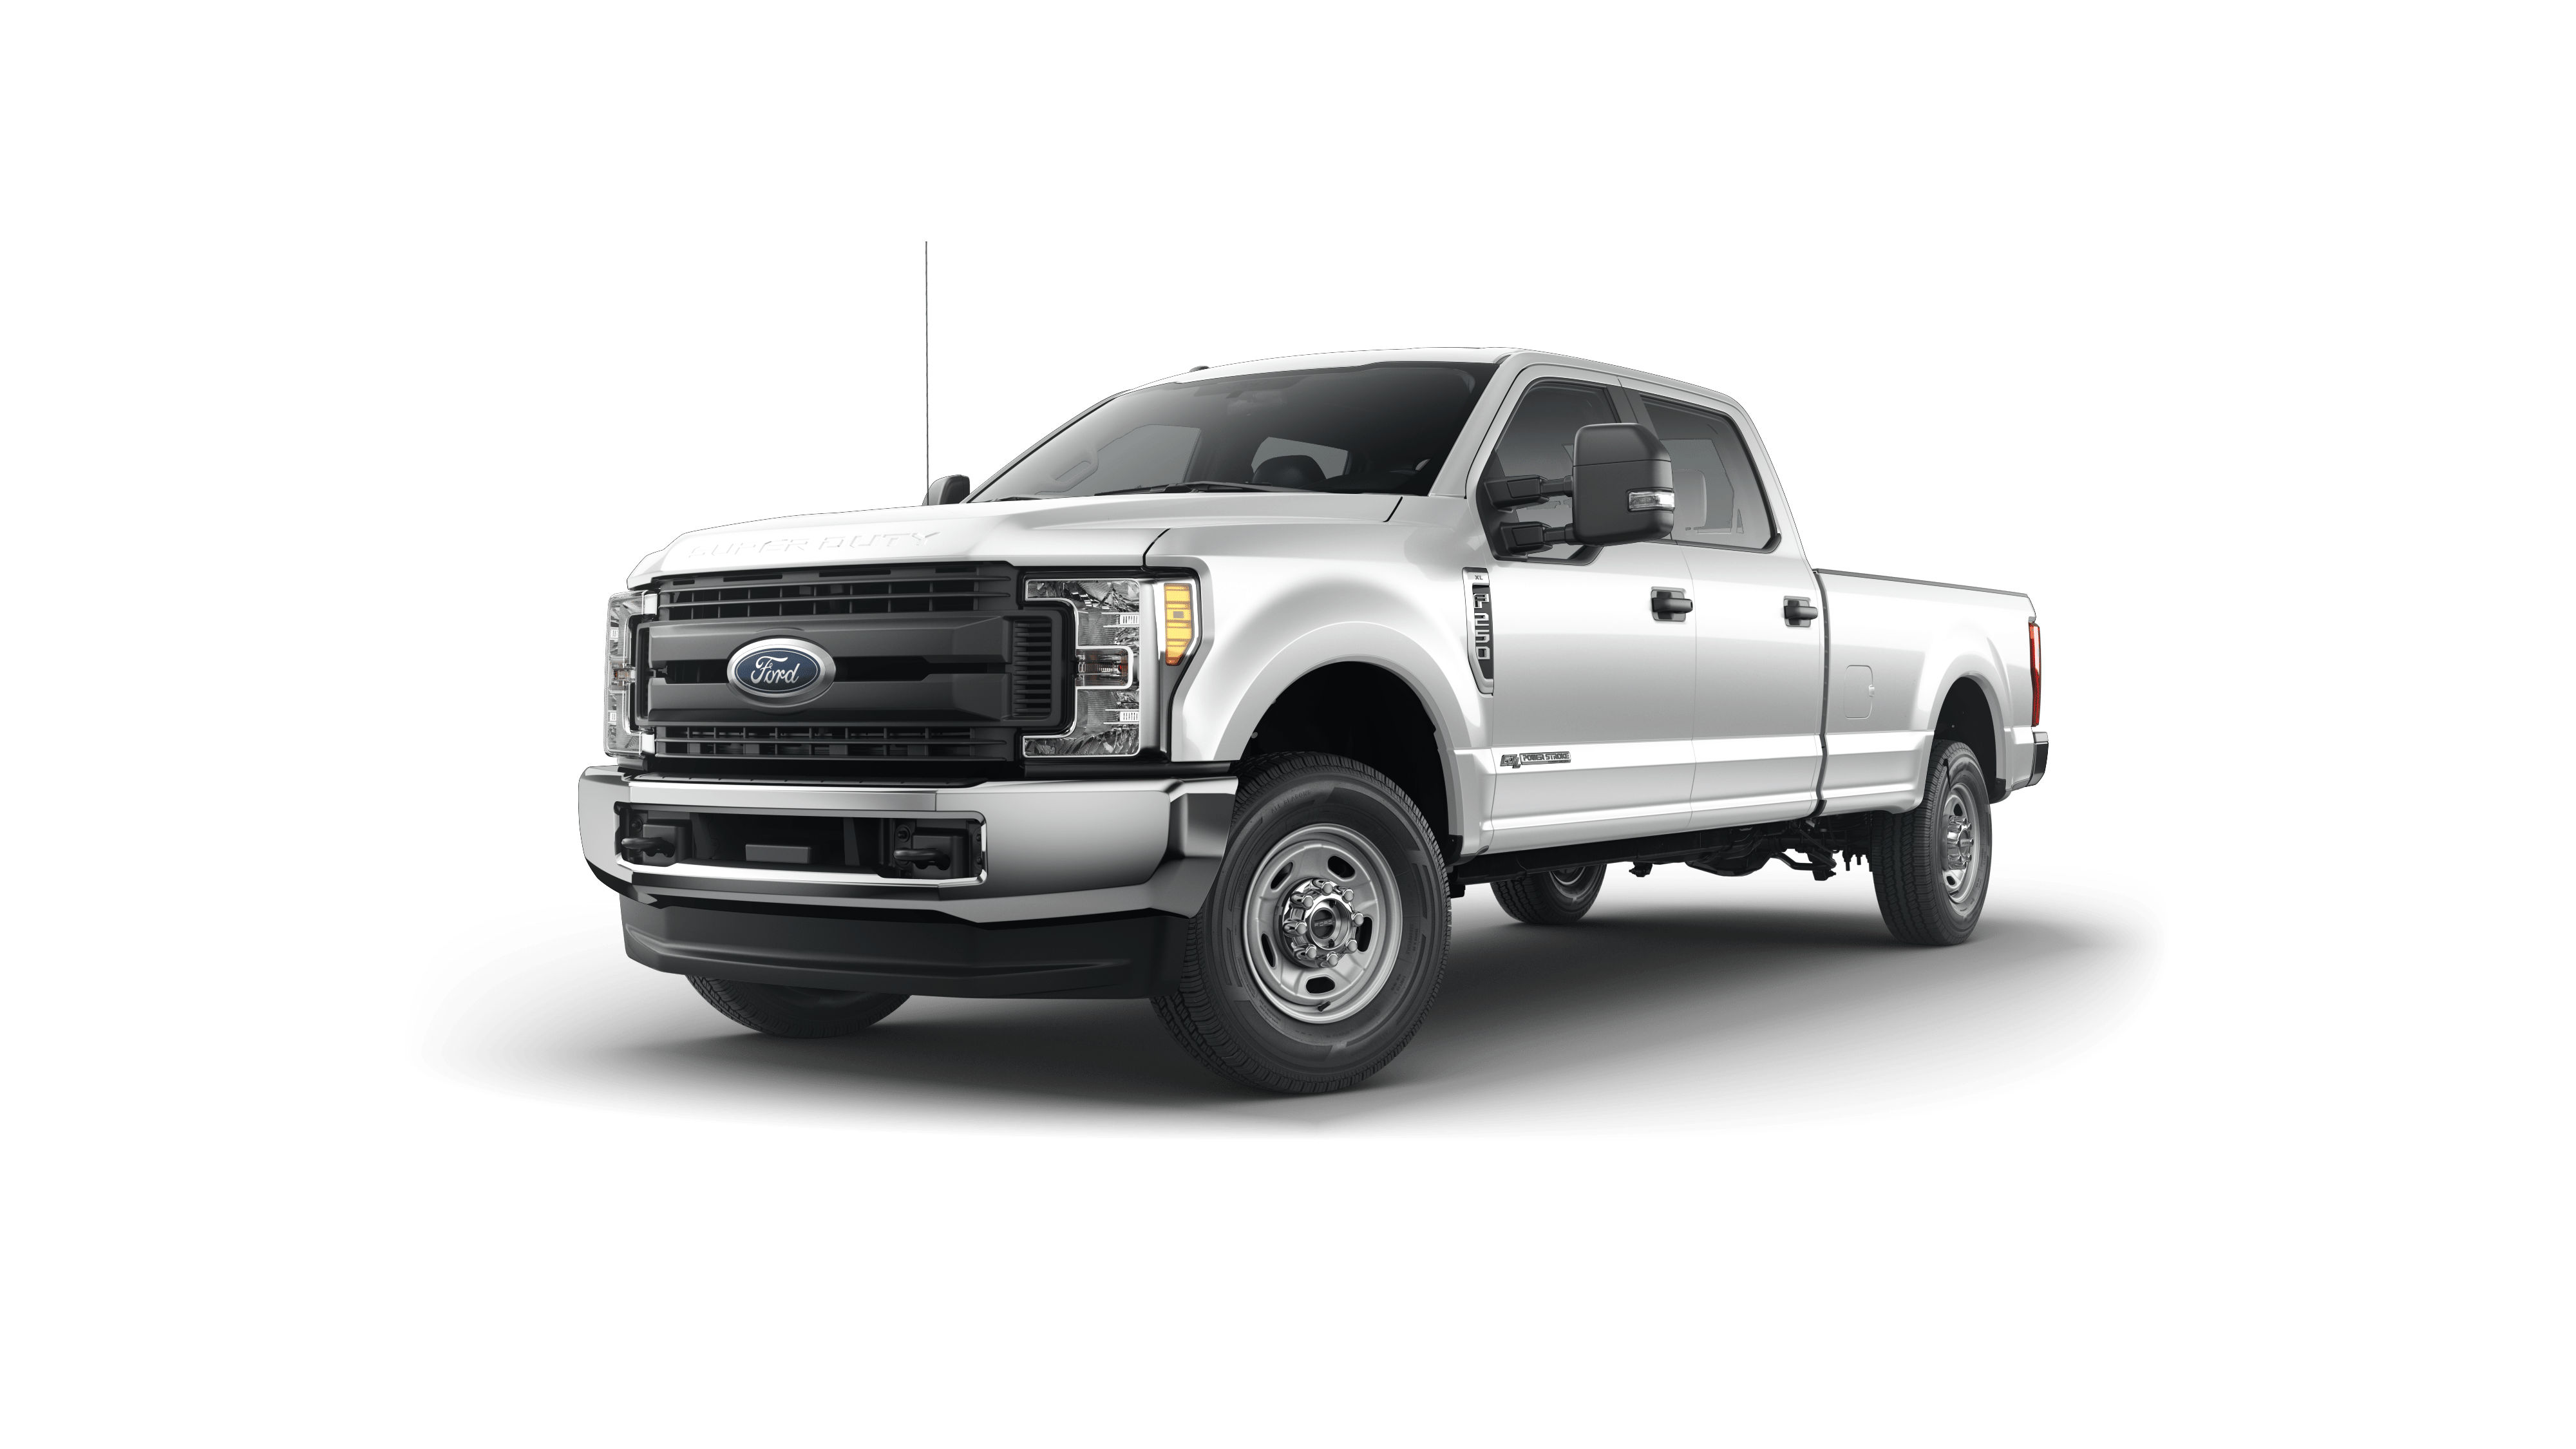 Southwest Ford Weatherford >> 2019 Ford Super Duty F-250 SRW for sale in Weatherford - 1FT7W2BT8KEG88447 - Southwest Ford, Inc.